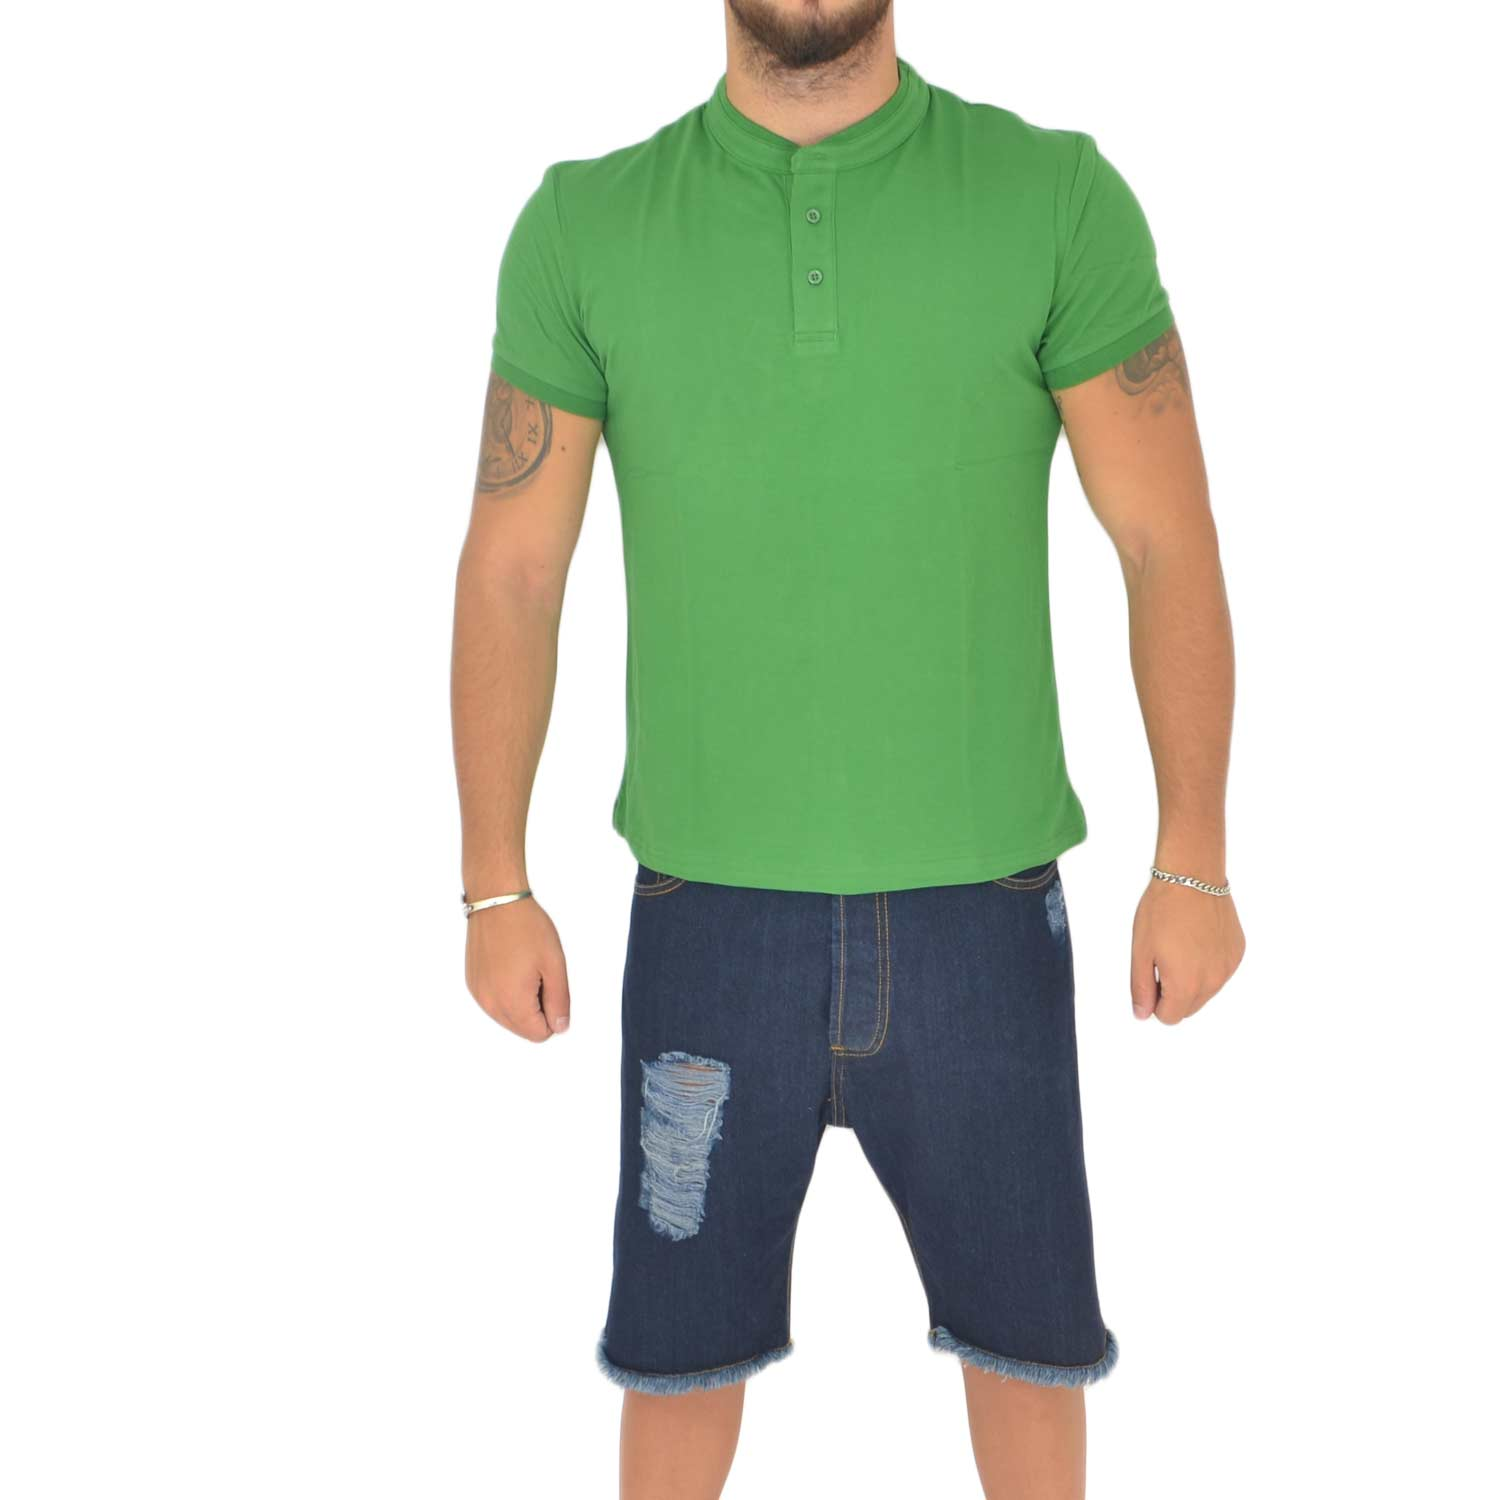 T- shirt basic uomo in cotone elastico verde semplice slim fit girocollo con cucitura in tinta made in italy